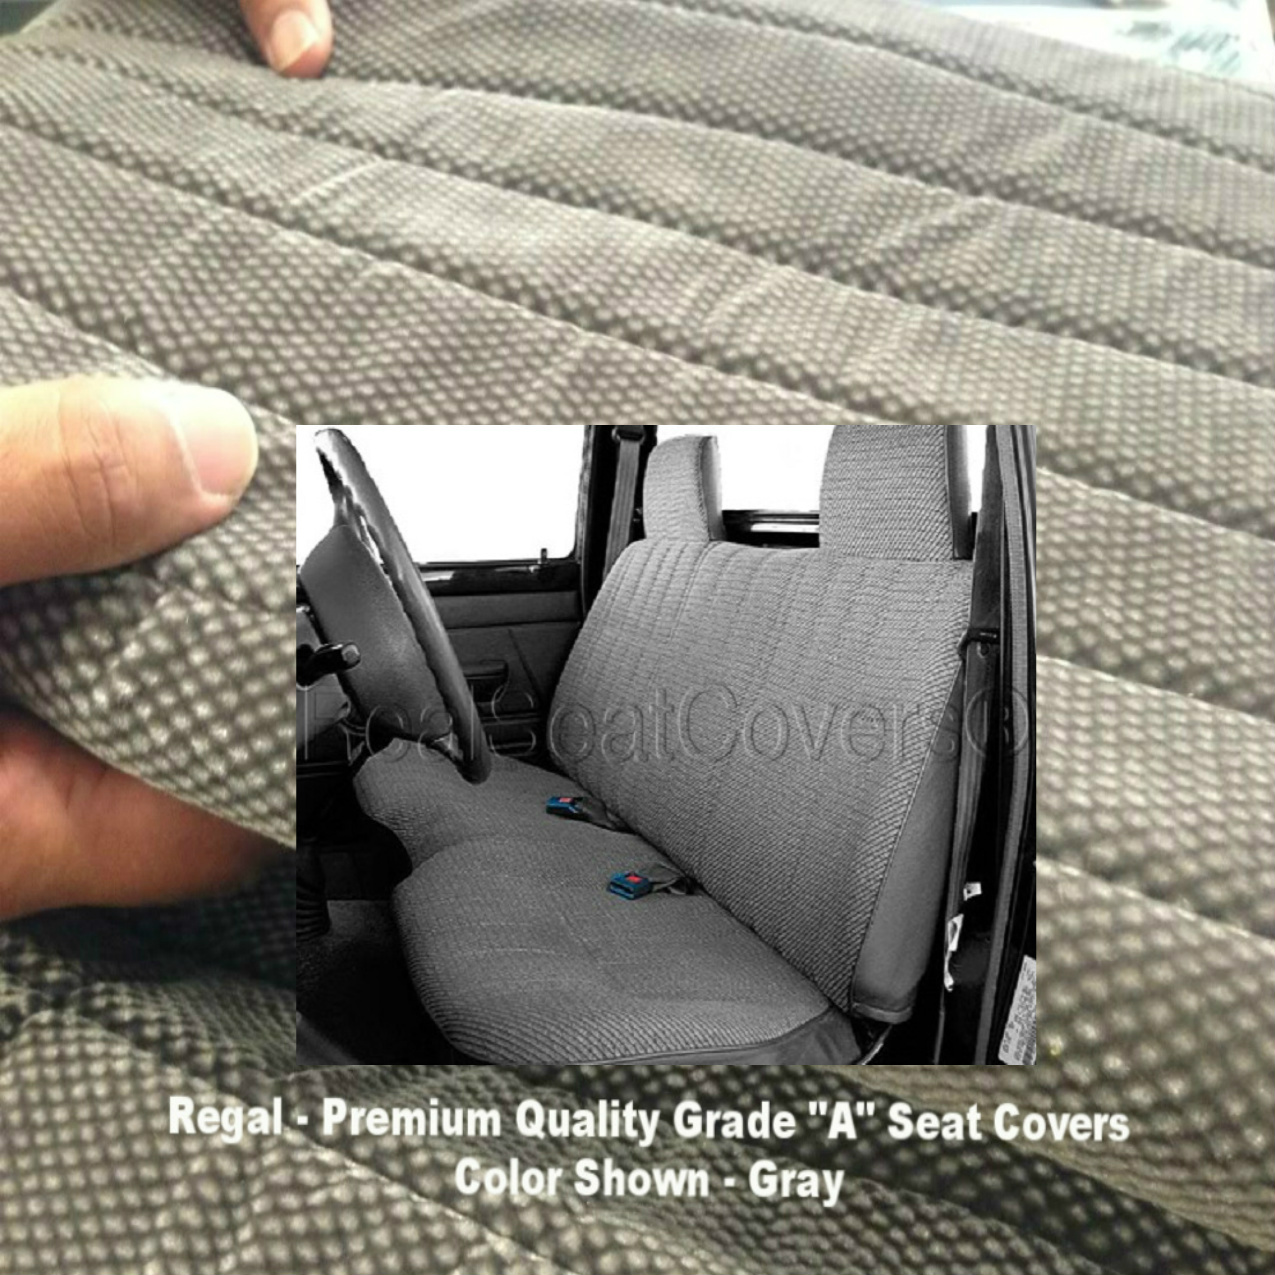 Toyota Pickup 1984 - 1989 Front Solid Bench A25 Seat Cover Molded Headrest Notched Cushion Gray, Grey